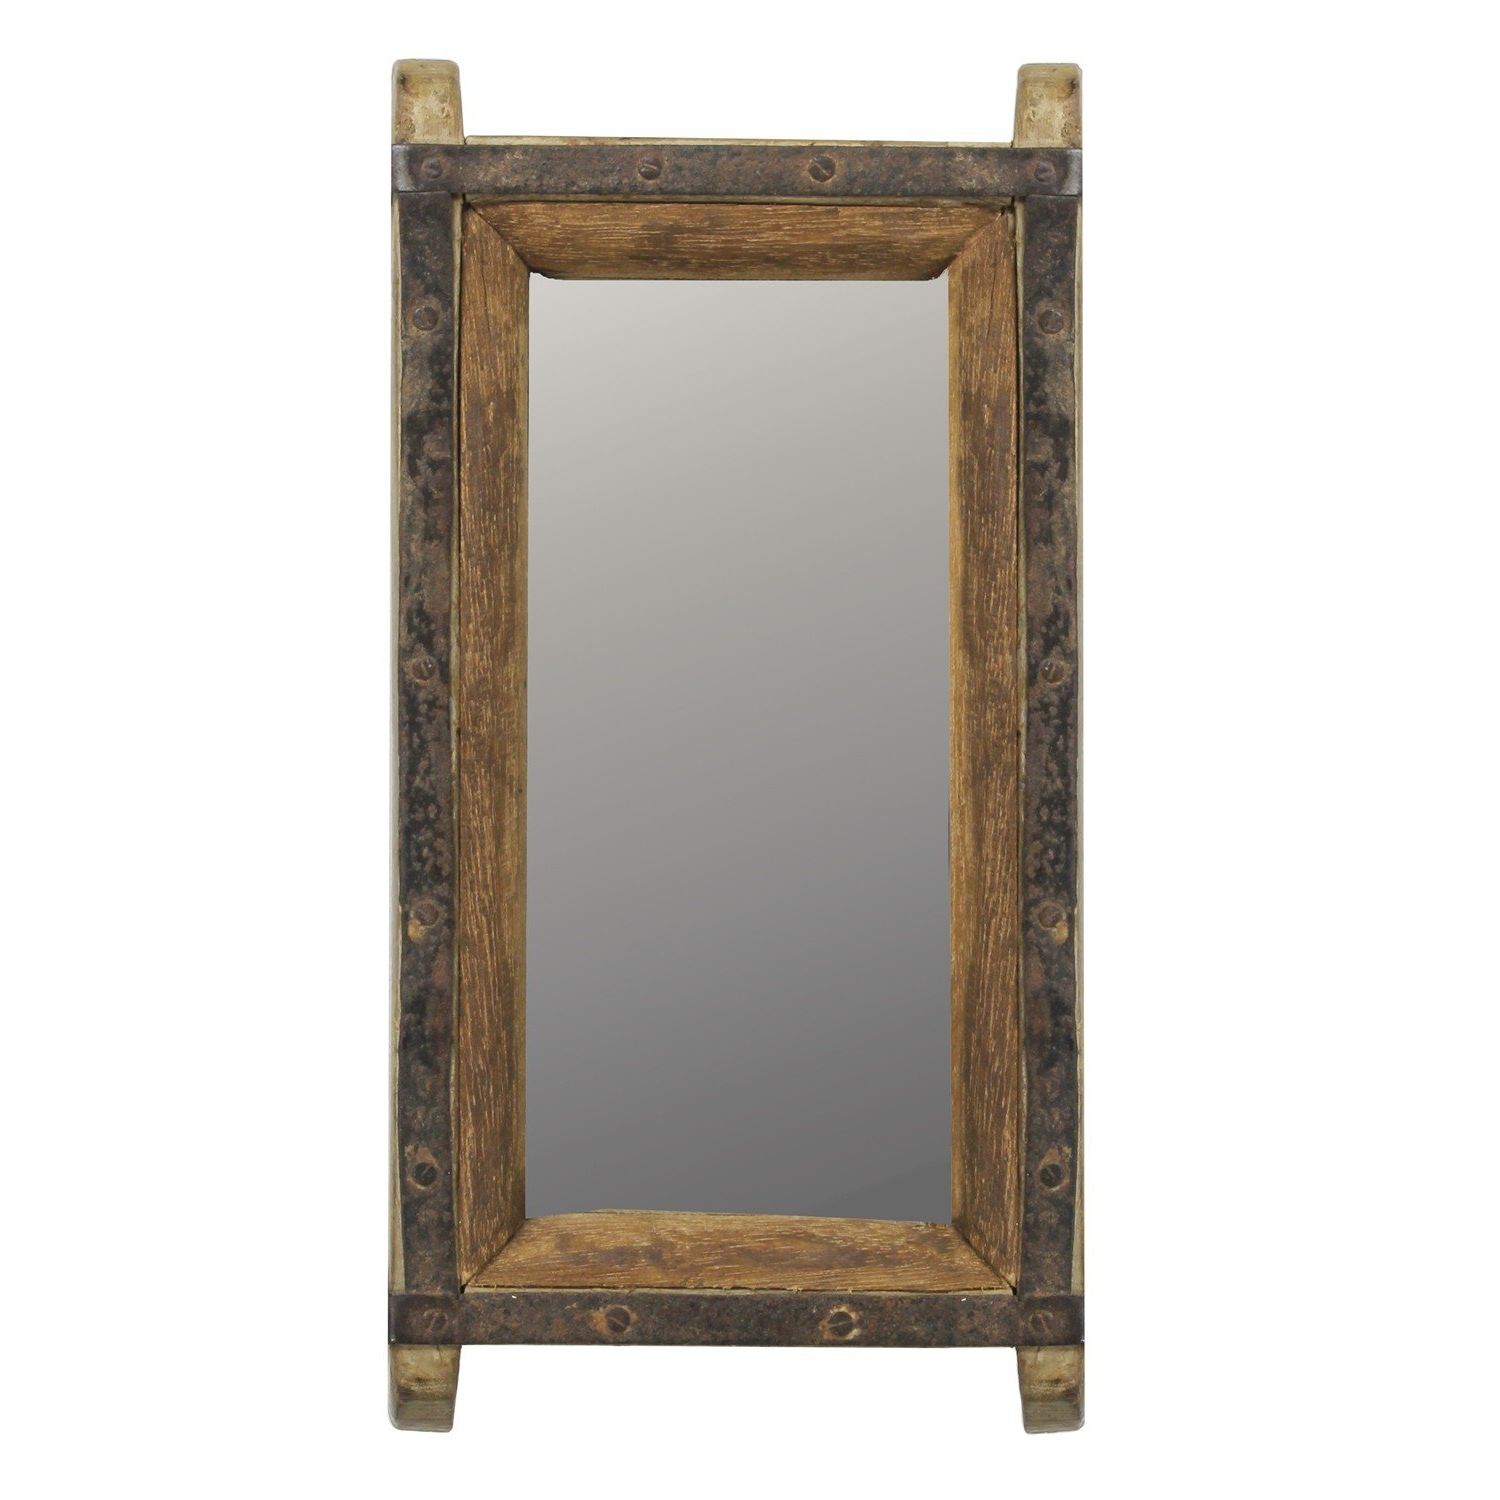 Most Current Amazon: My Swanky Home Vintage Wood Brick Mold Wall Mirror Within Vintage Wall Mirrors (View 11 of 20)